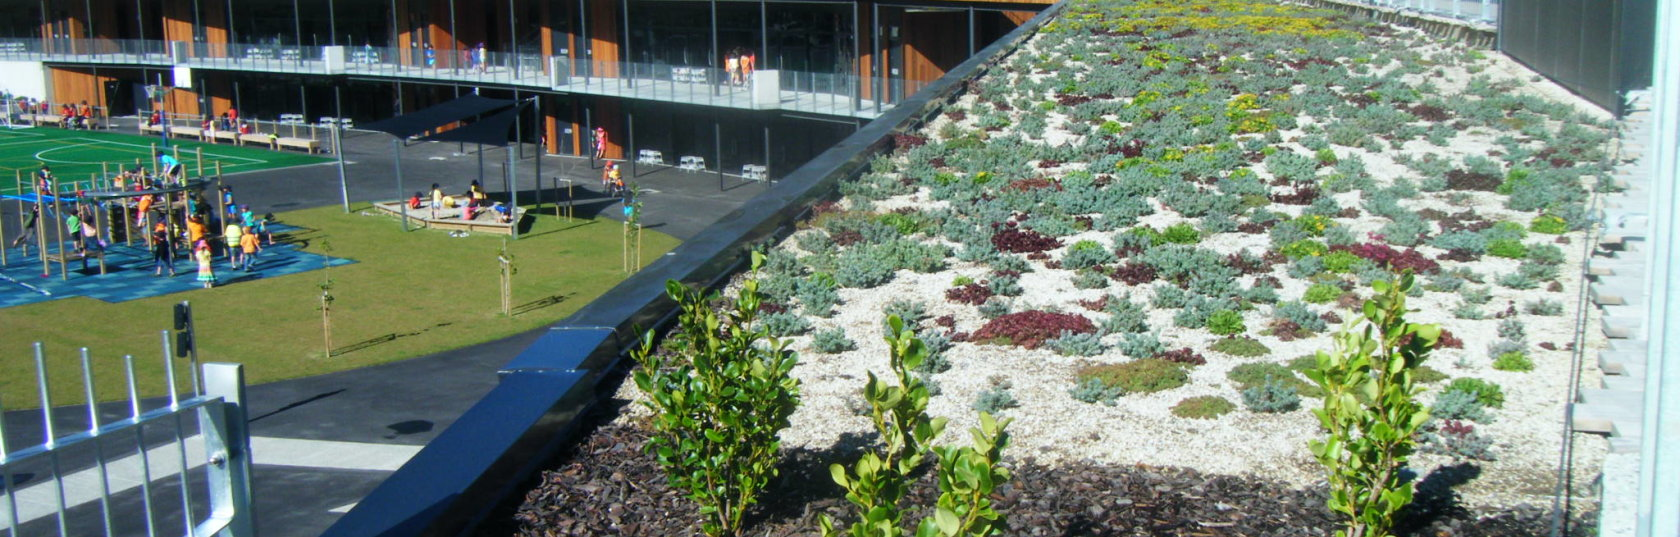 Greening our cities: from the rooftops